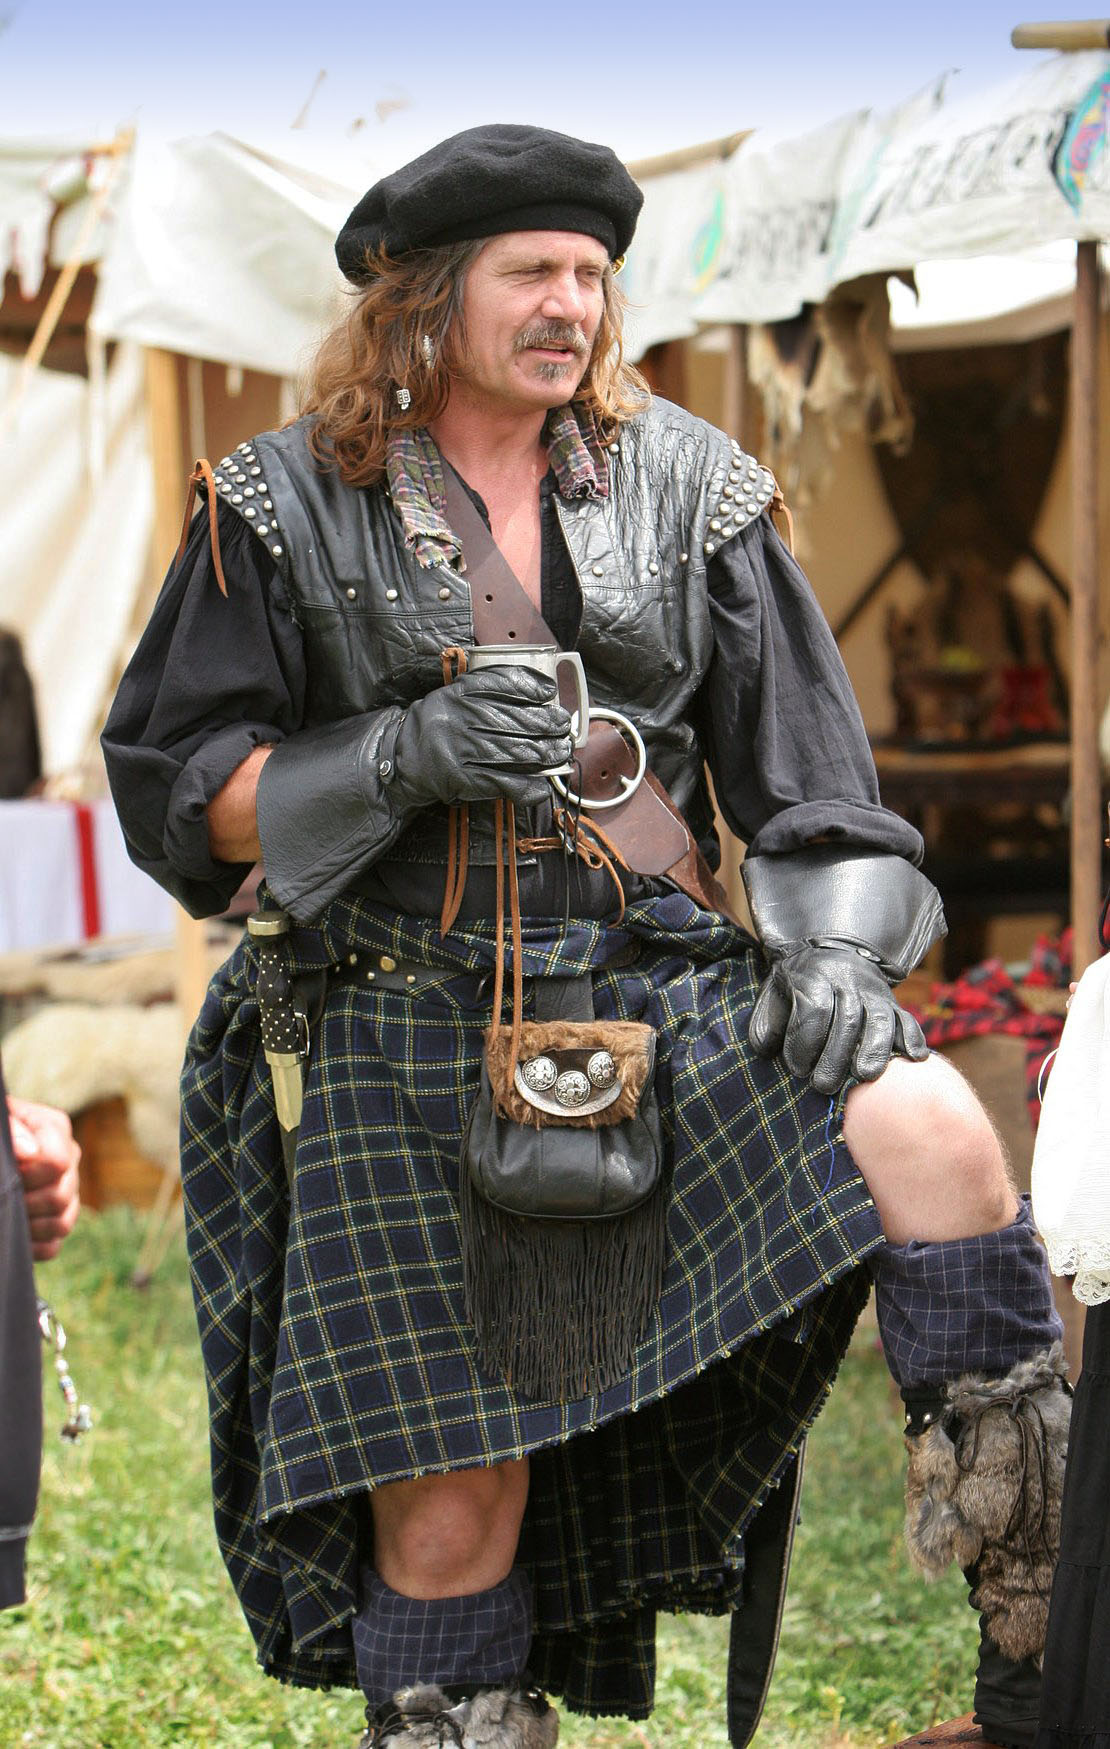 A belted plaid with sporran as worn by a reenactor of Scottish history.